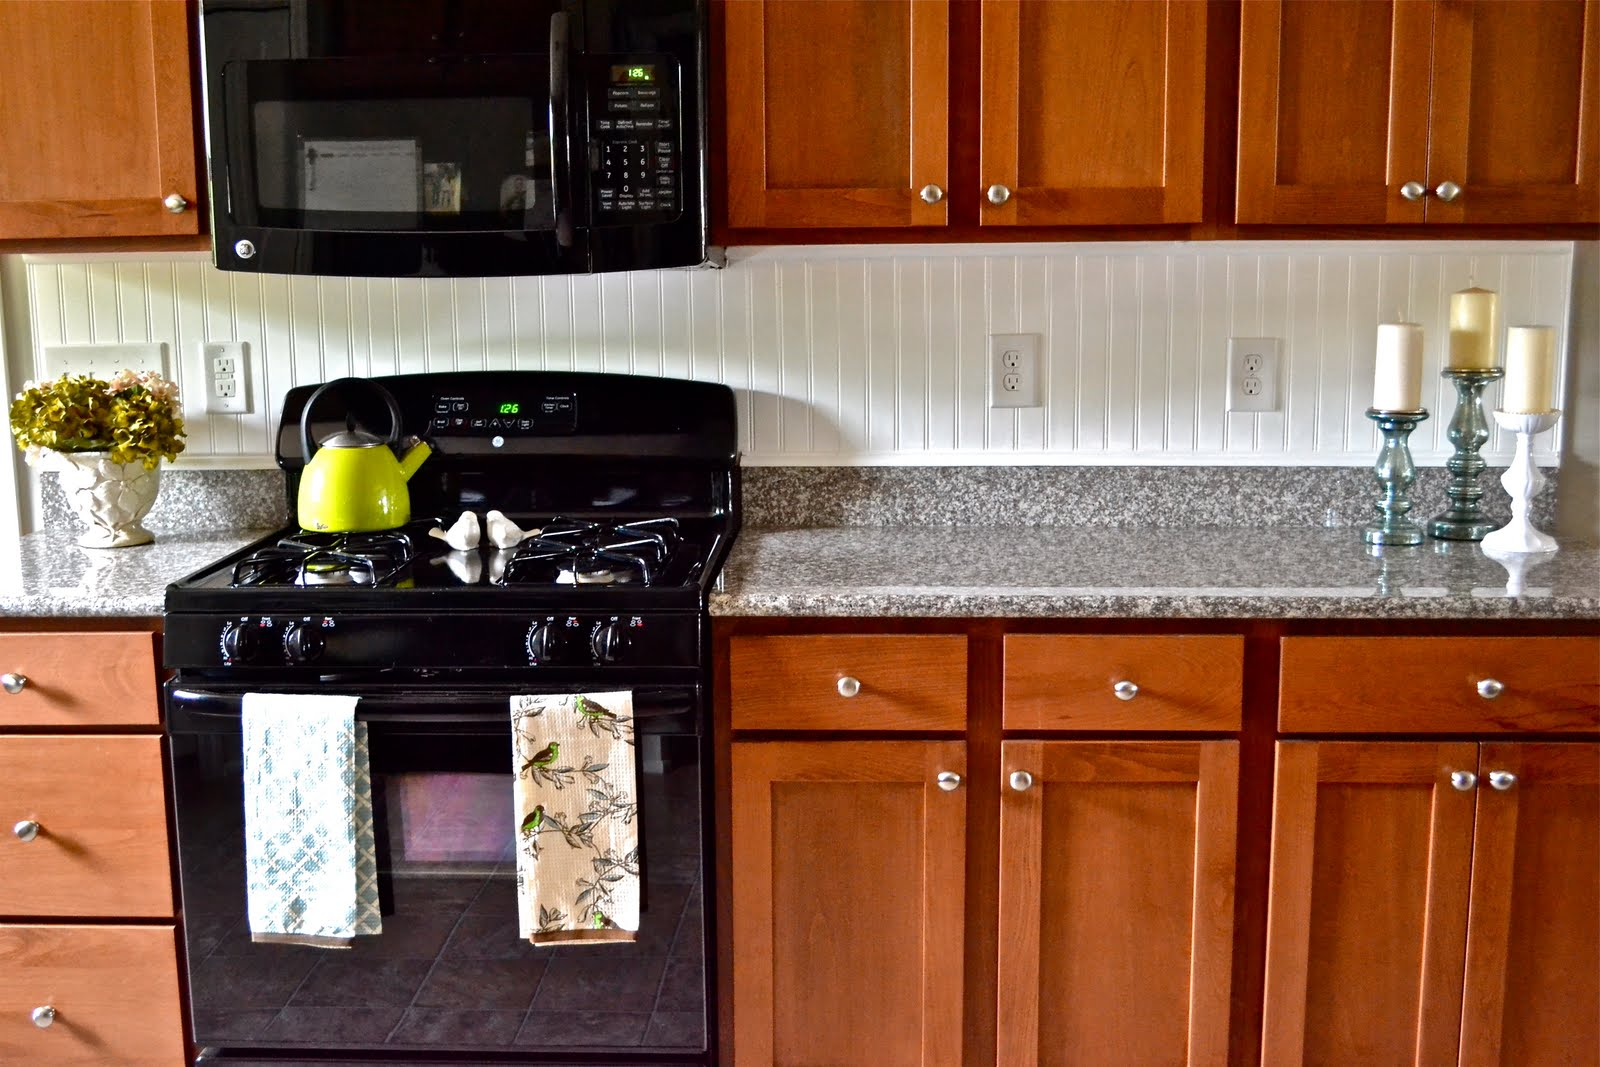 beadboard backsplash - liz marie blog